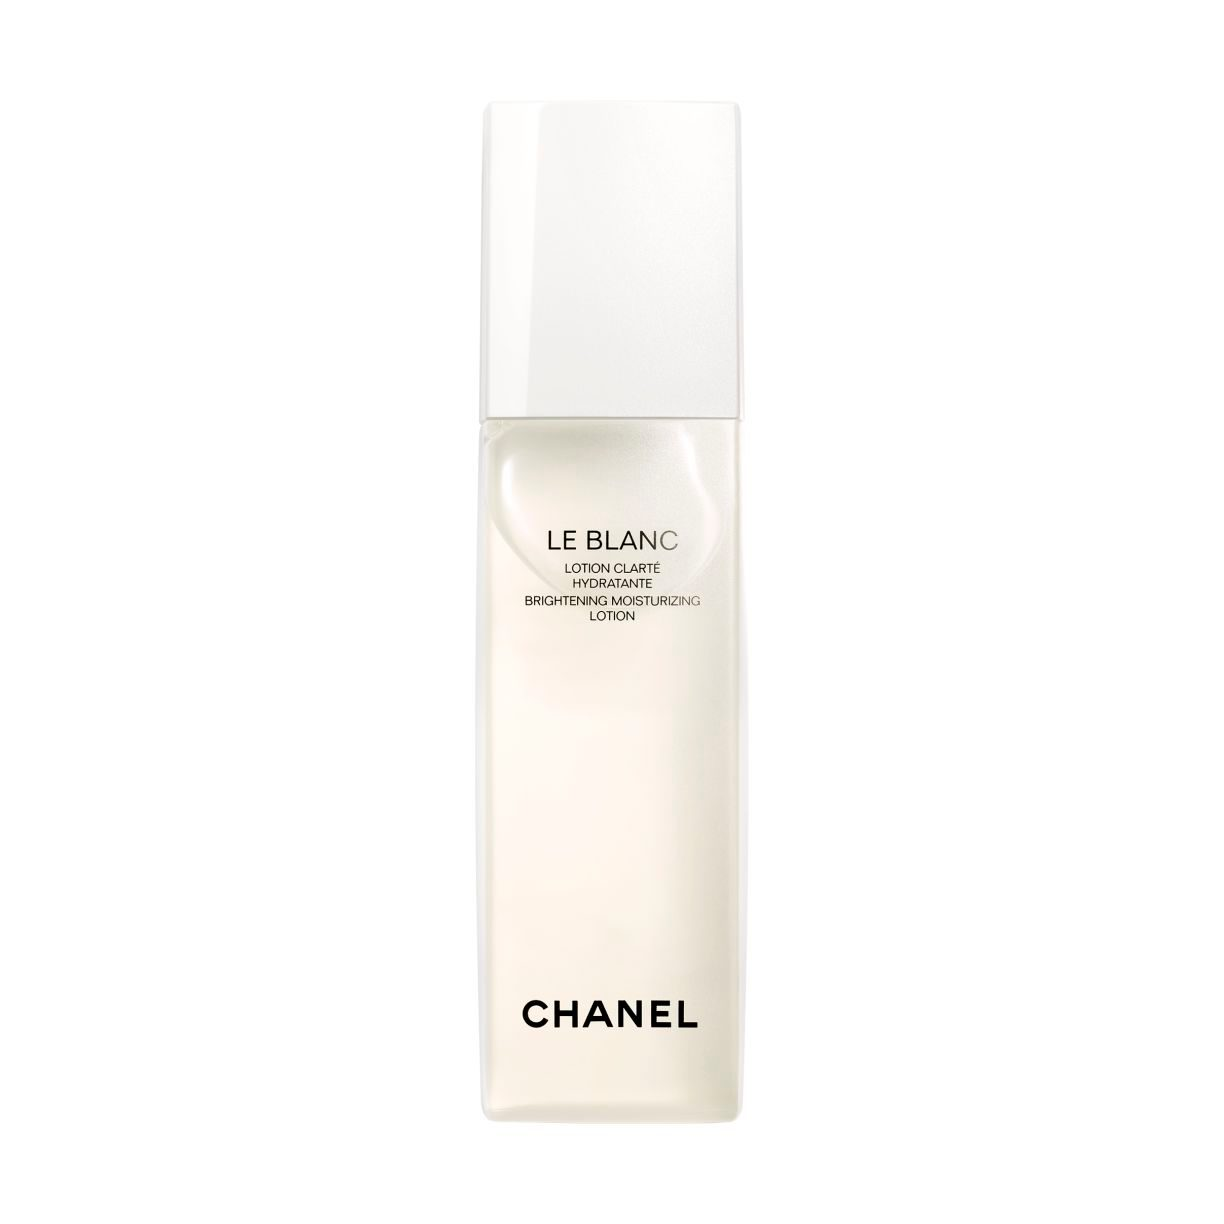 LE BLANC BRIGHTENING MOISTURISING LOTION 150ml